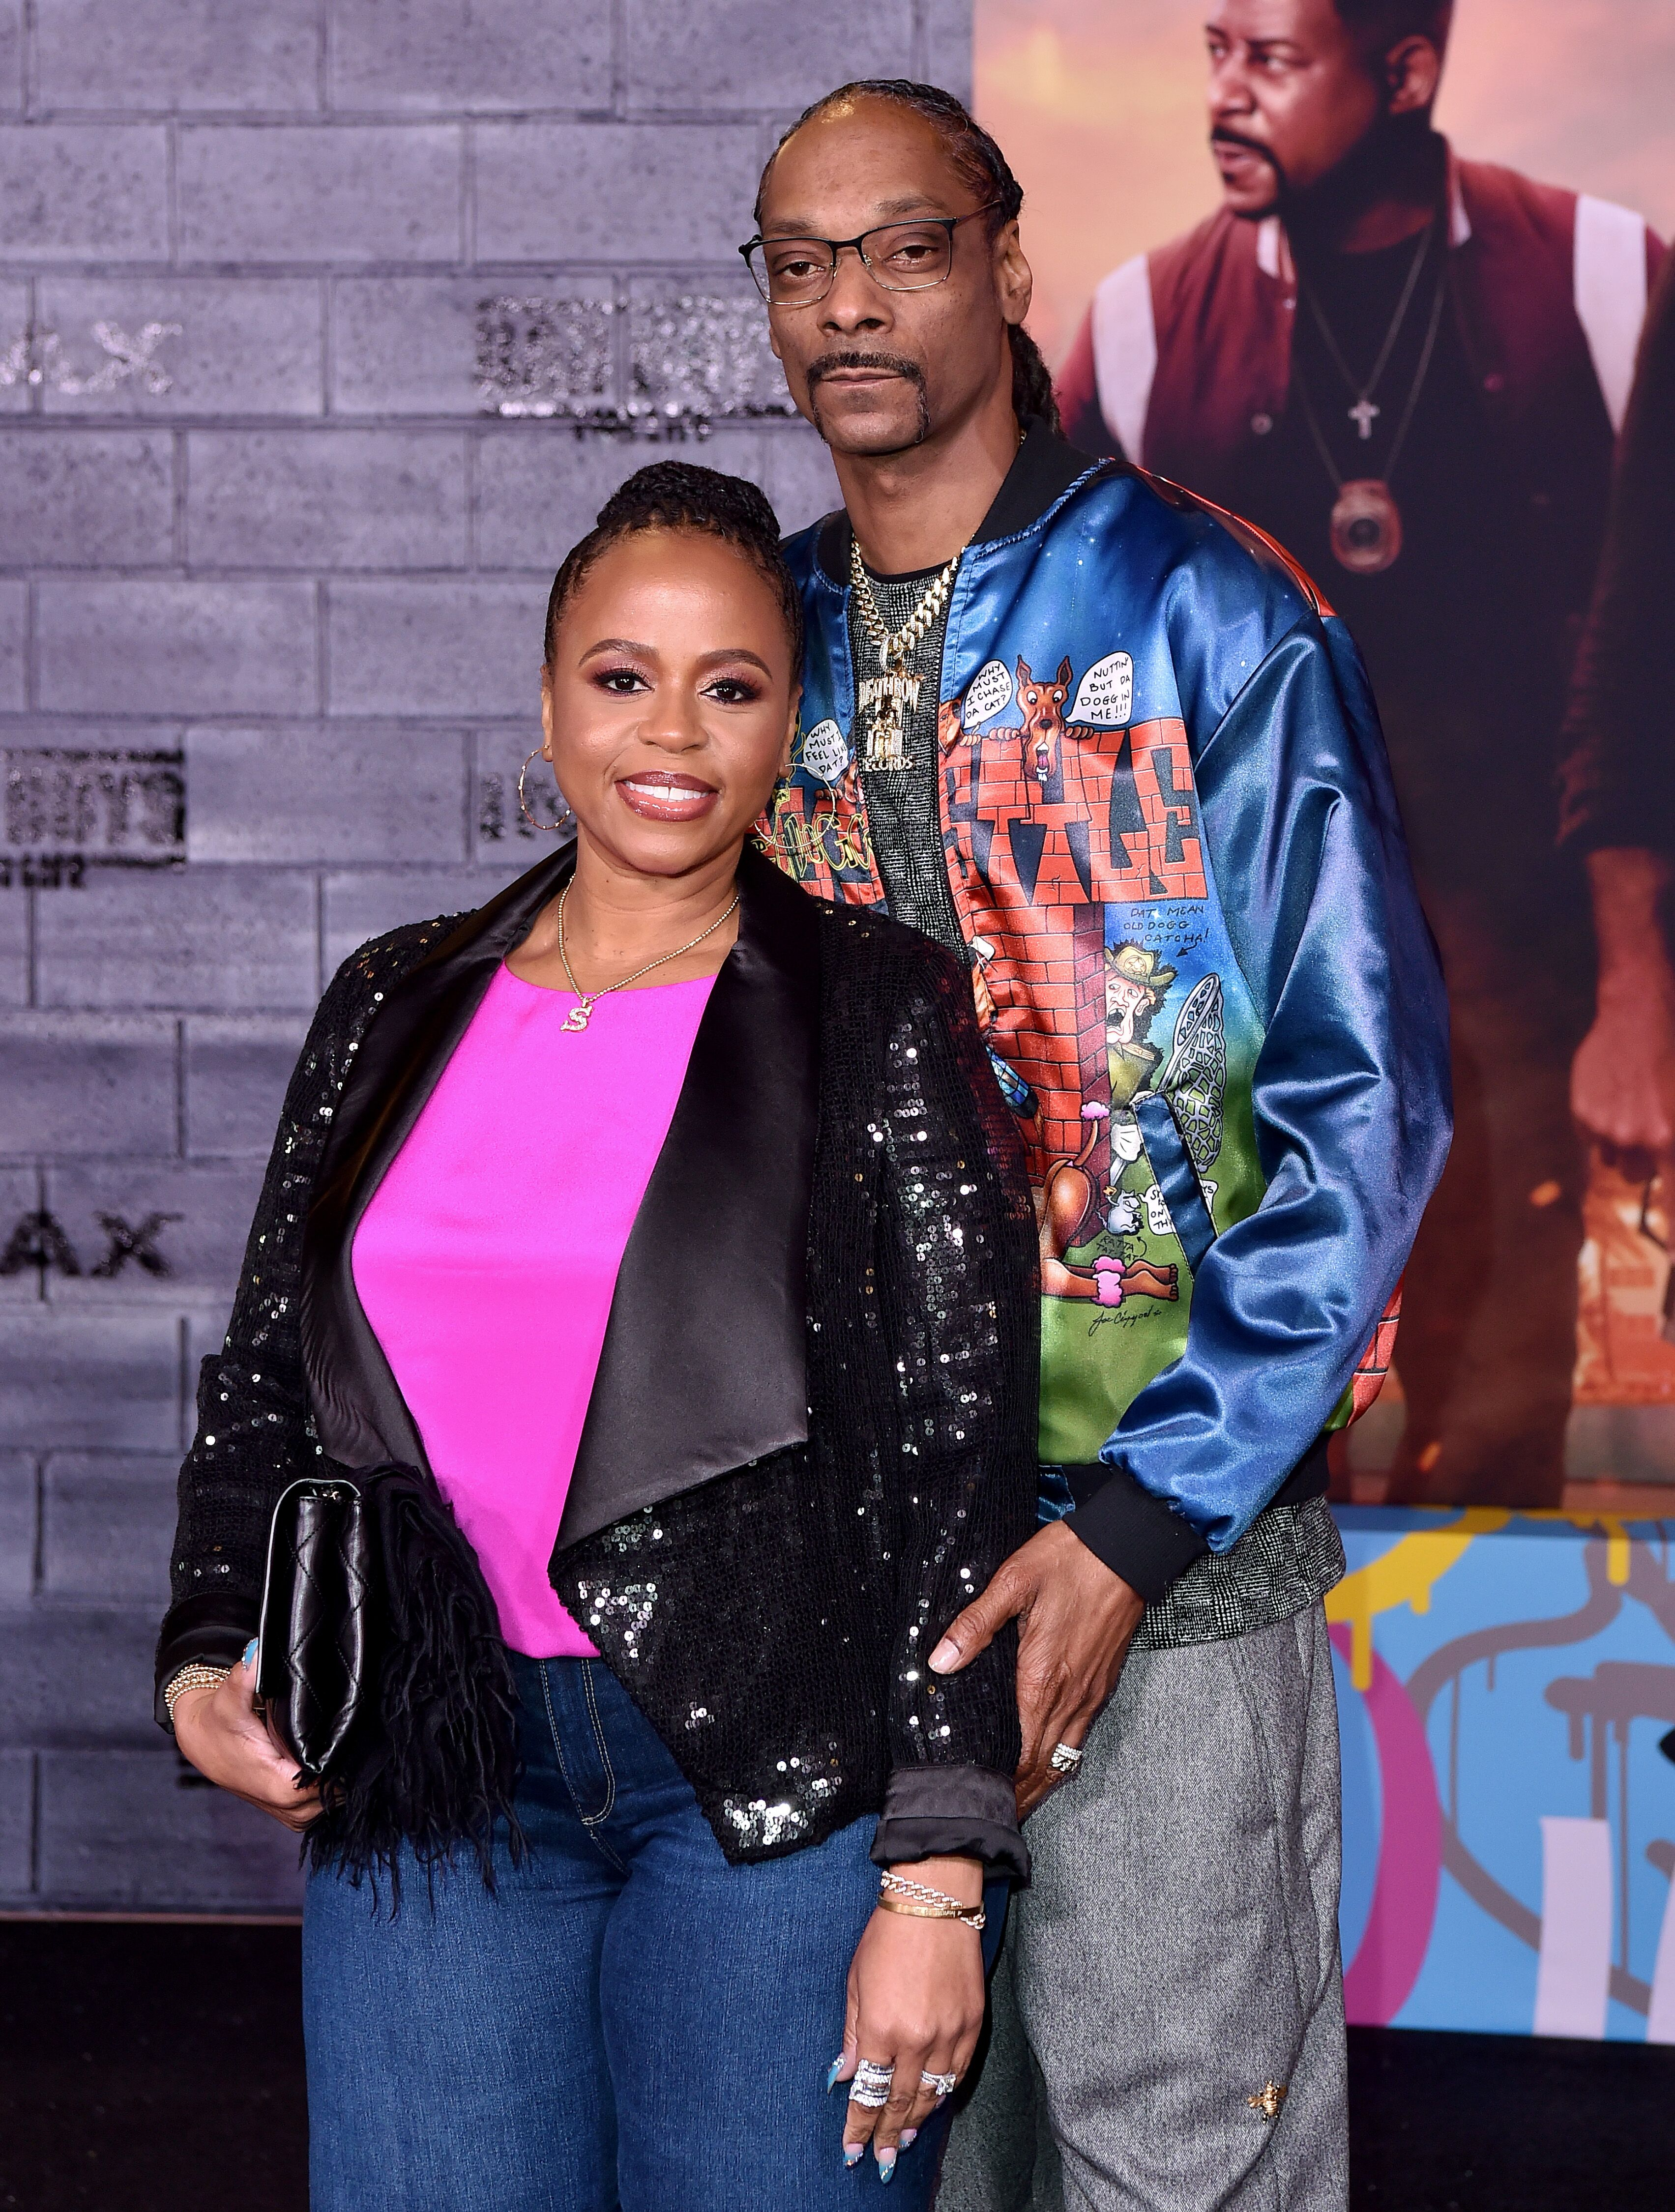 """Shante Broadus and Snoop Dogg attend the Premiere of Columbia Pictures' """"Bad Boys for Life"""" at TCL Chinese Theatre on January 14, 2020 in Hollywood, California. 